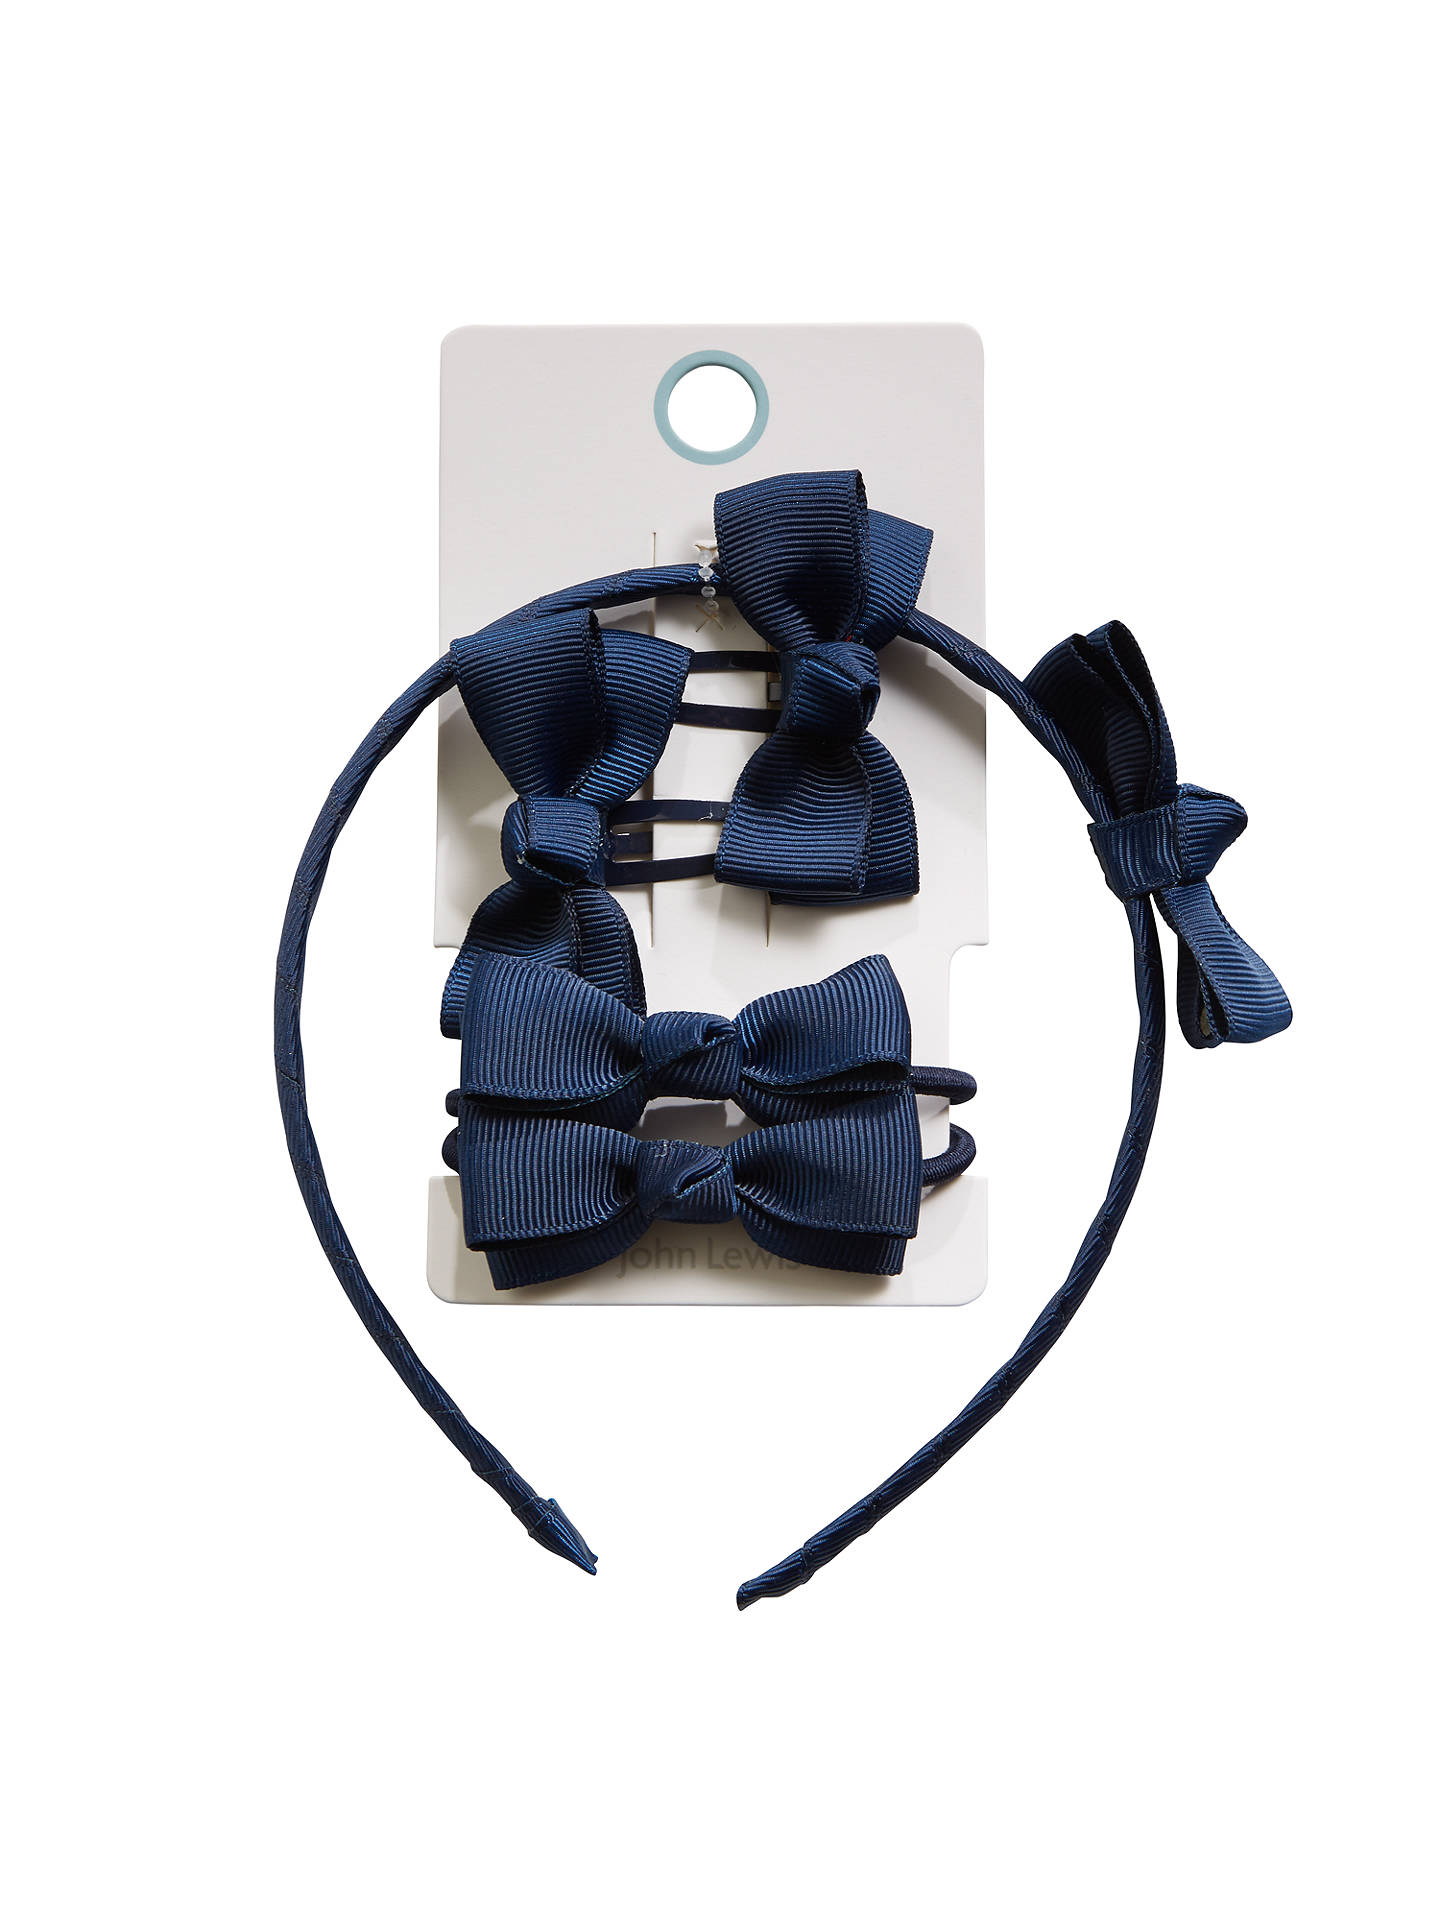 BuyJohn Lewis & Partners Girls' Hair Accessories, Pack of 5, Blue Online at johnlewis.com